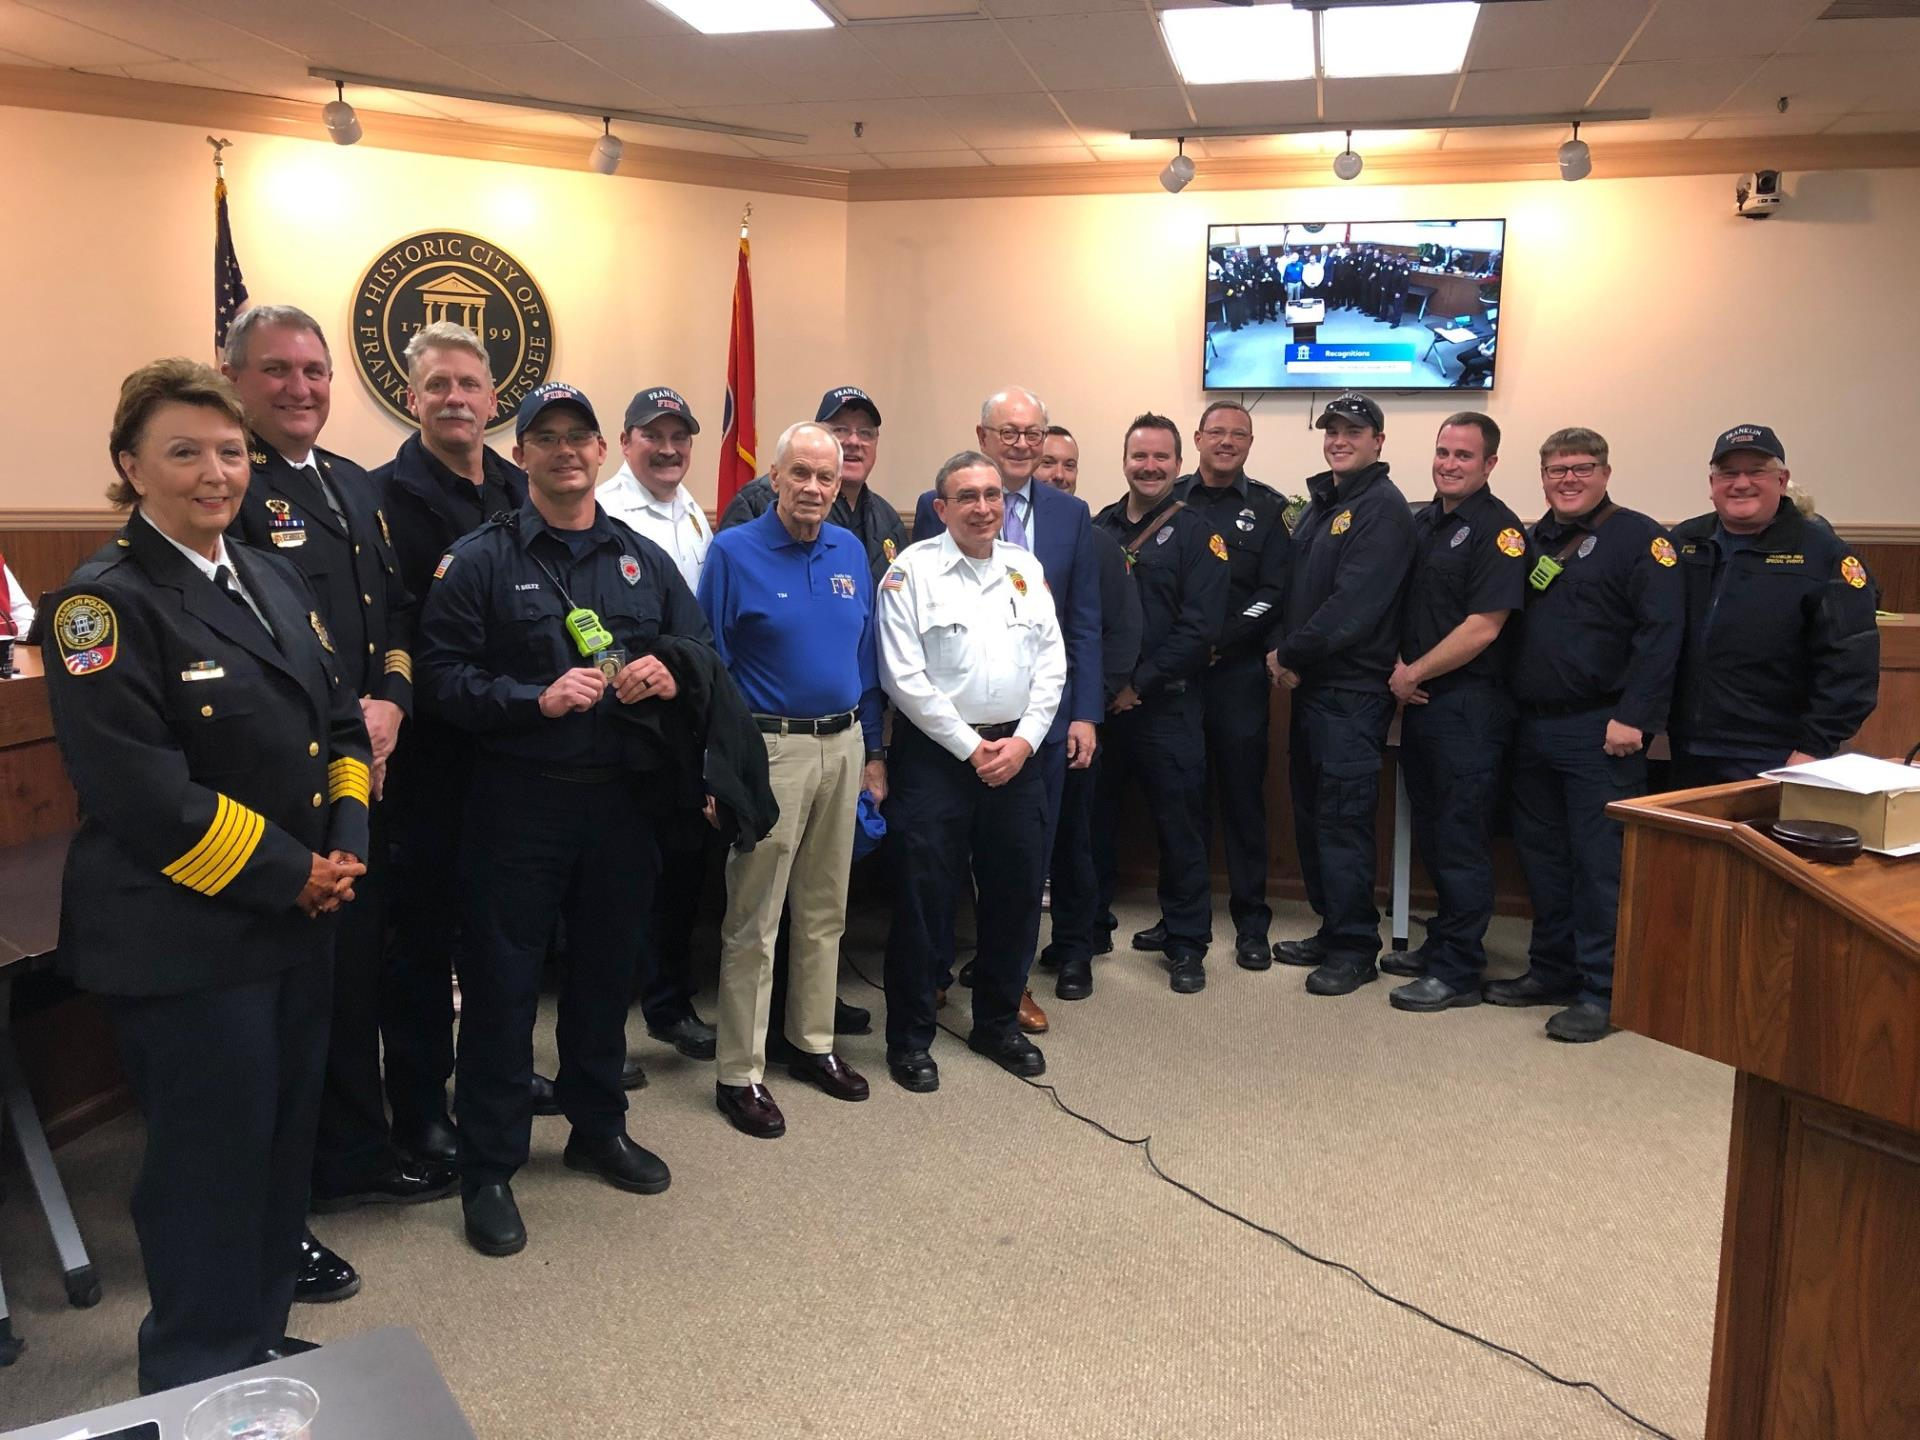 Firefighters who were honored for saving a life